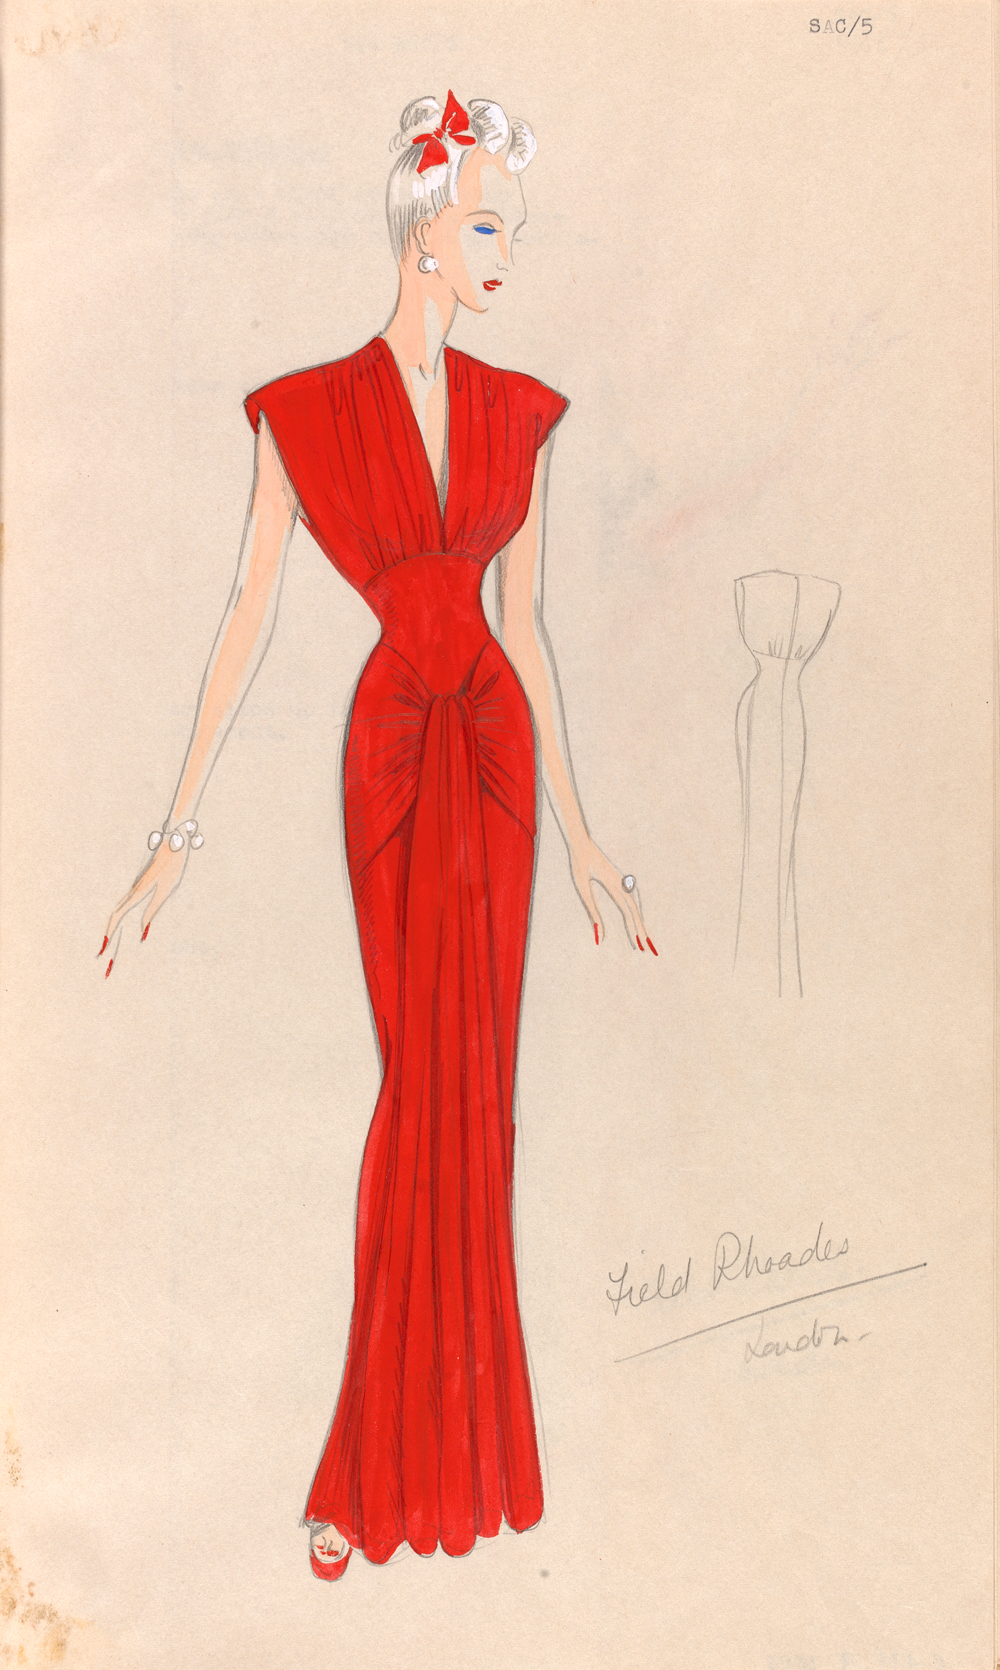 f66837d6797f5 Fashion Drawing and Illustration in the 20th Century - Victoria and ...